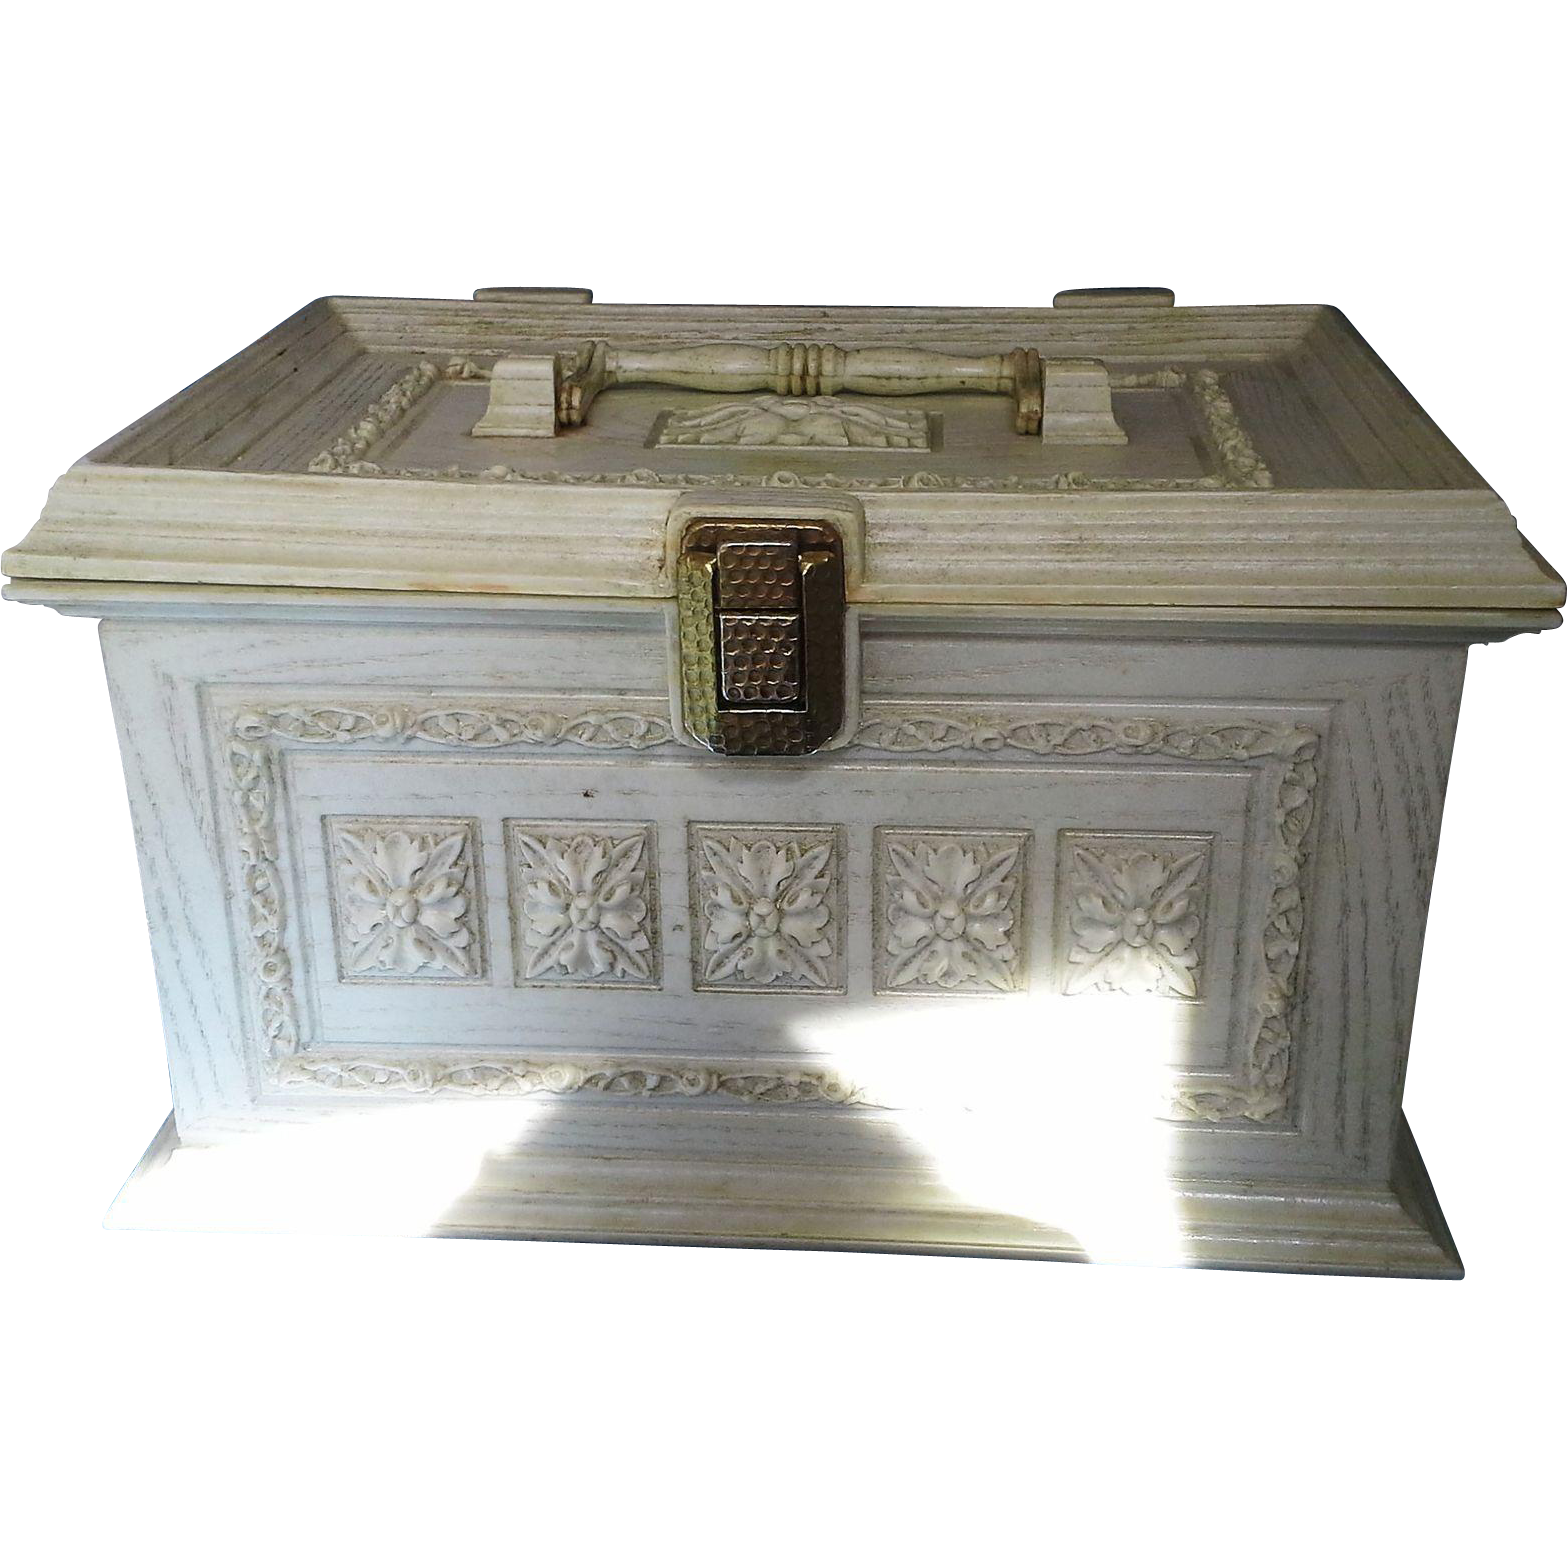 Max Klein Cream Faux Wood Plastic Sewing Notions Box